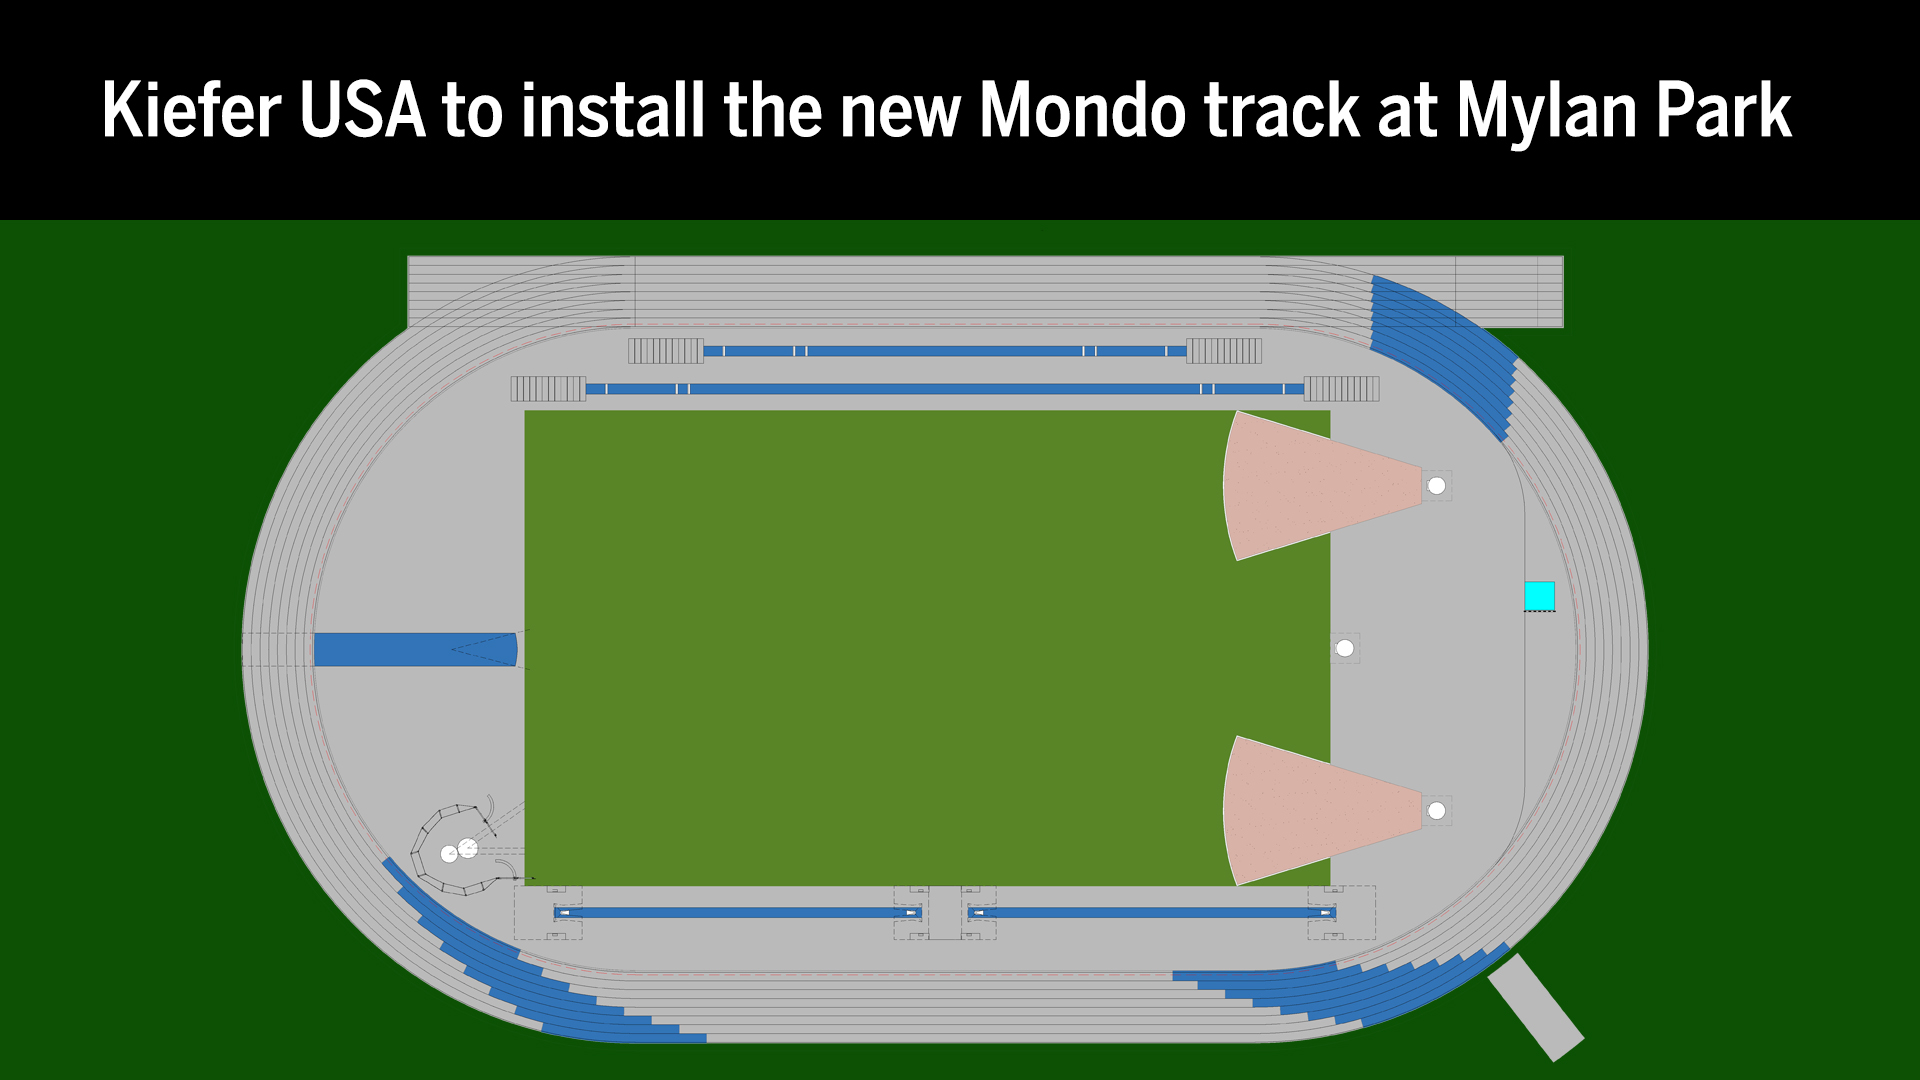 Kiefer USA to install the new Mondo track at Mylan Park